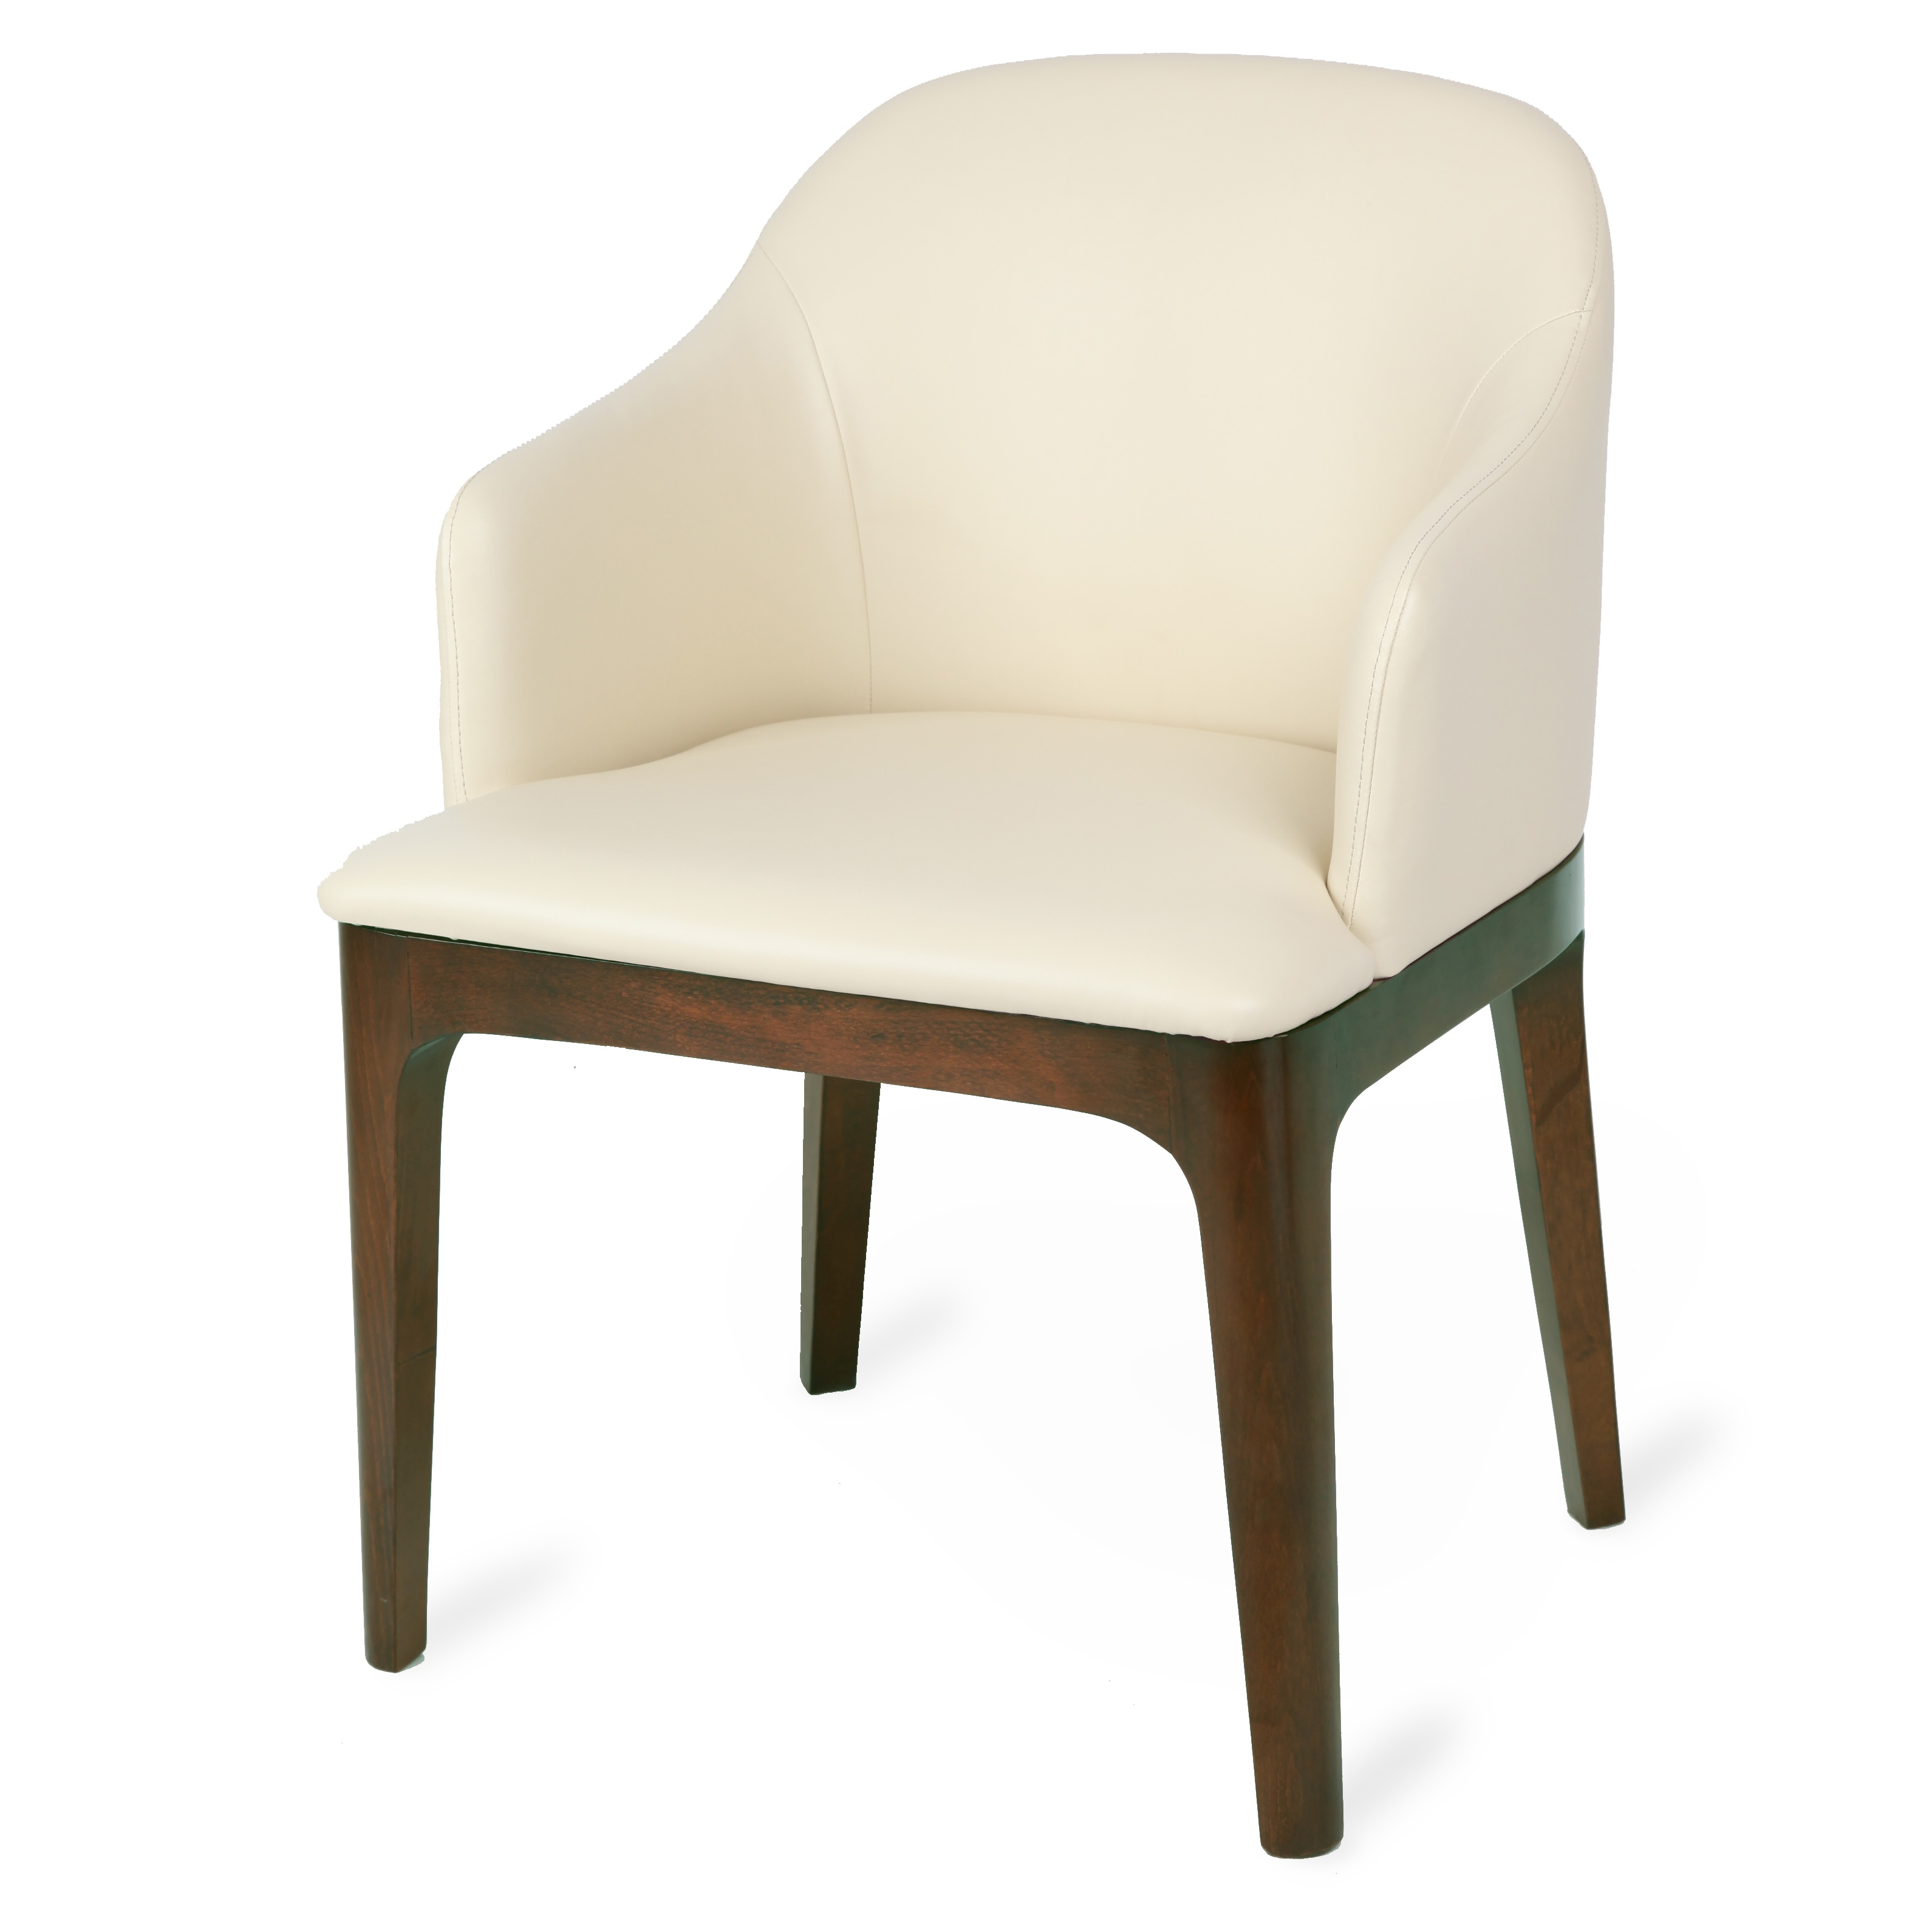 Luxury dining room chairs mr price home light of dining room - Tables and chairs price ...